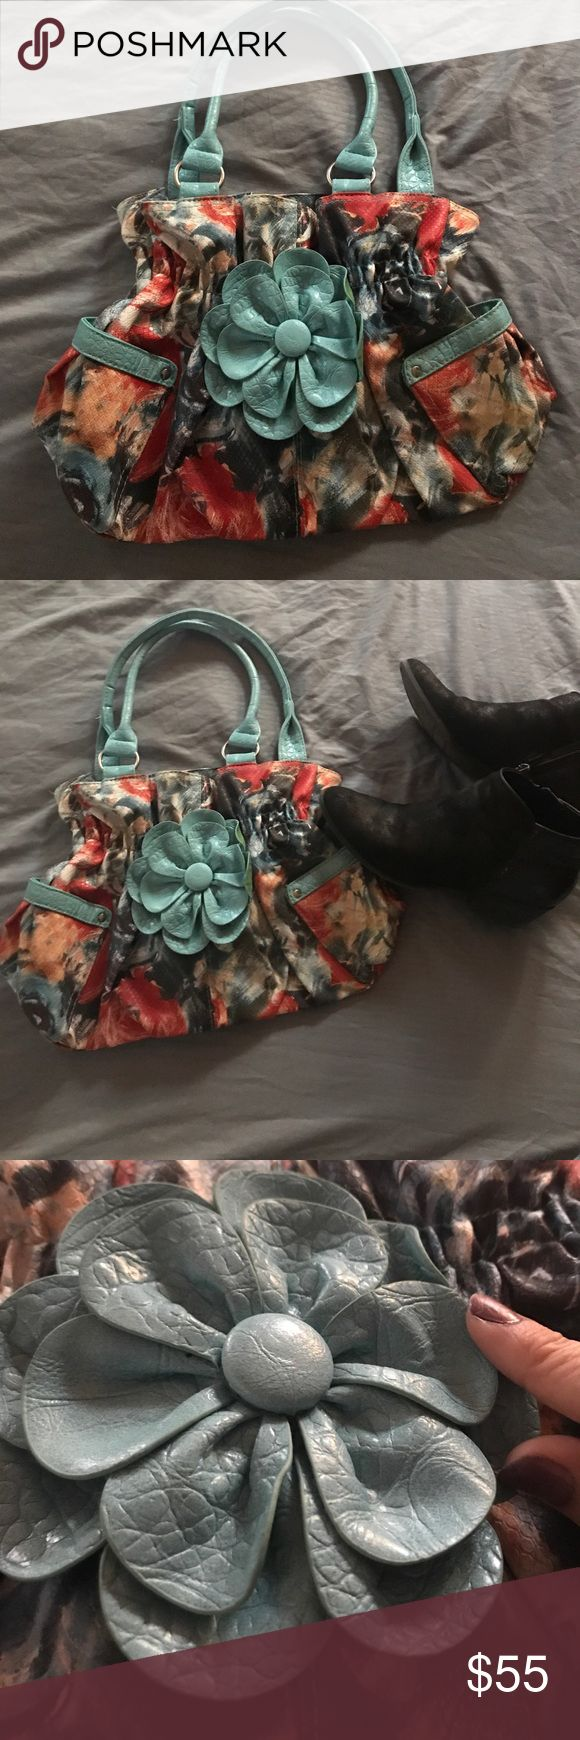 NWOT floral shoulder bag with blue leather flower NWOT cute floral shoulder bag with button closure. The bag has two side pockets on the exterior and a zipper storage pouch inside. The handles are light blue as well as the leather flower on the front. Super cute fashion piece to add to your wardrobe! Thank you for checking out my closet! Happy Shopping !! Bags